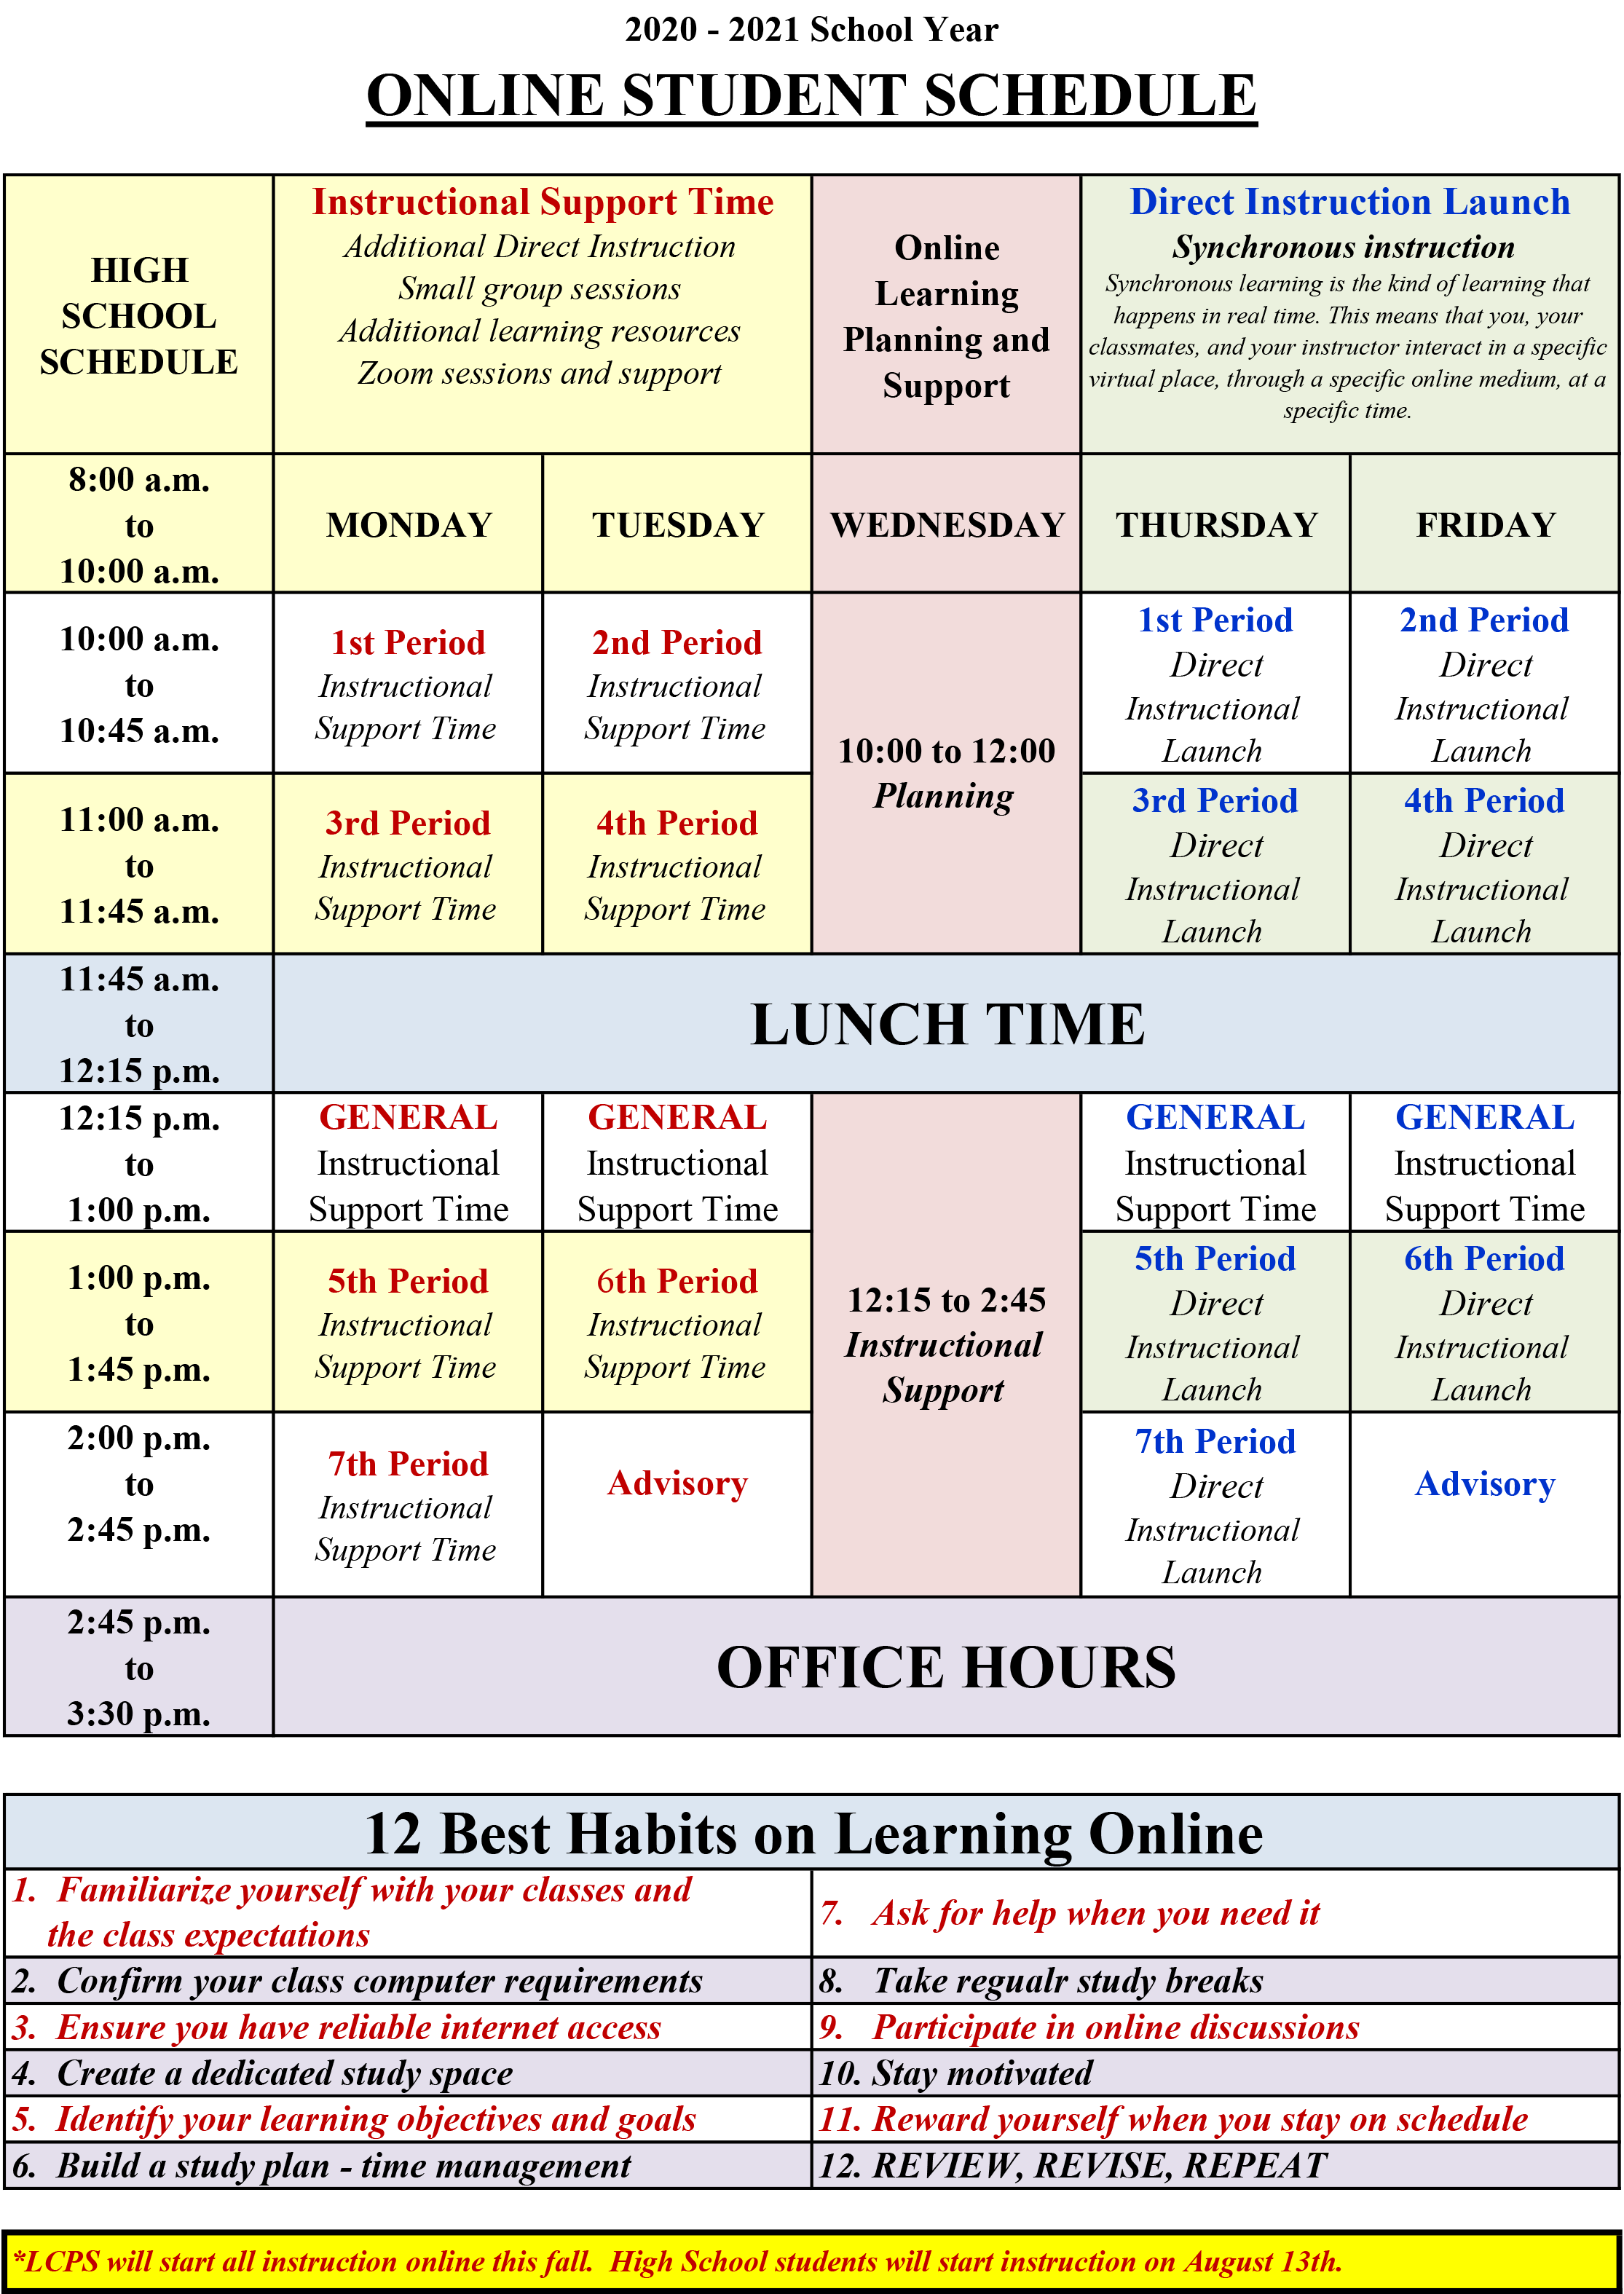 Student Schedule and Good Habits